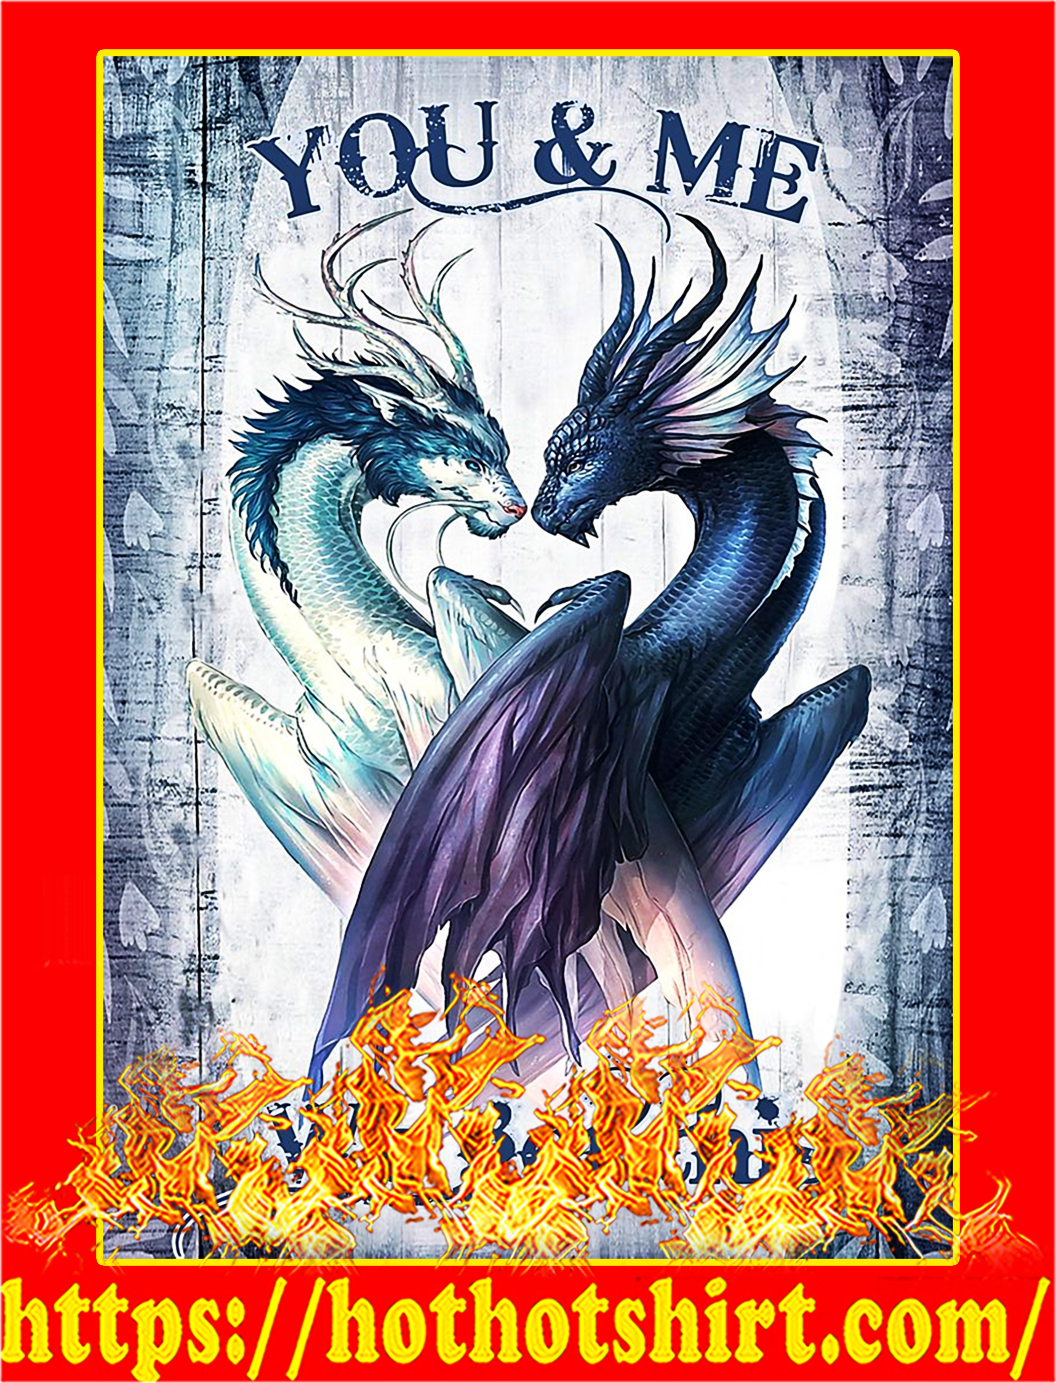 You and me we got this dragon poster - A2